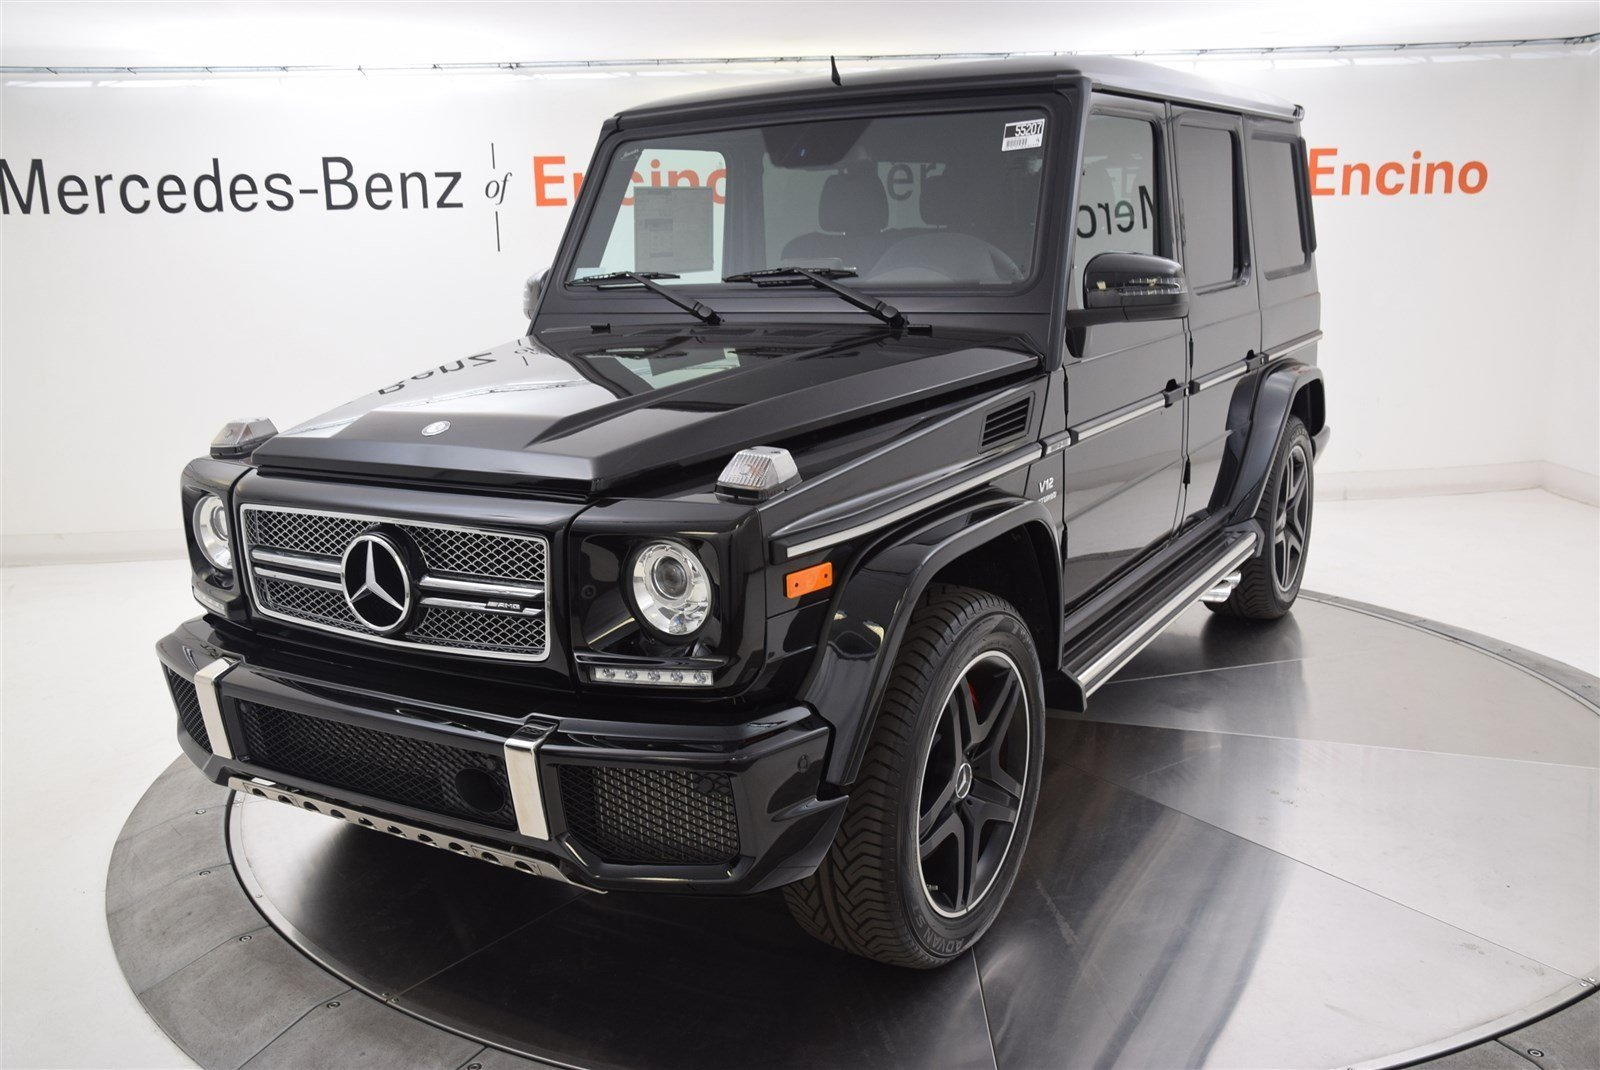 New 2016 mercedes benz g class g 65 amg suv suv in encino for Mercedes benz e class suv